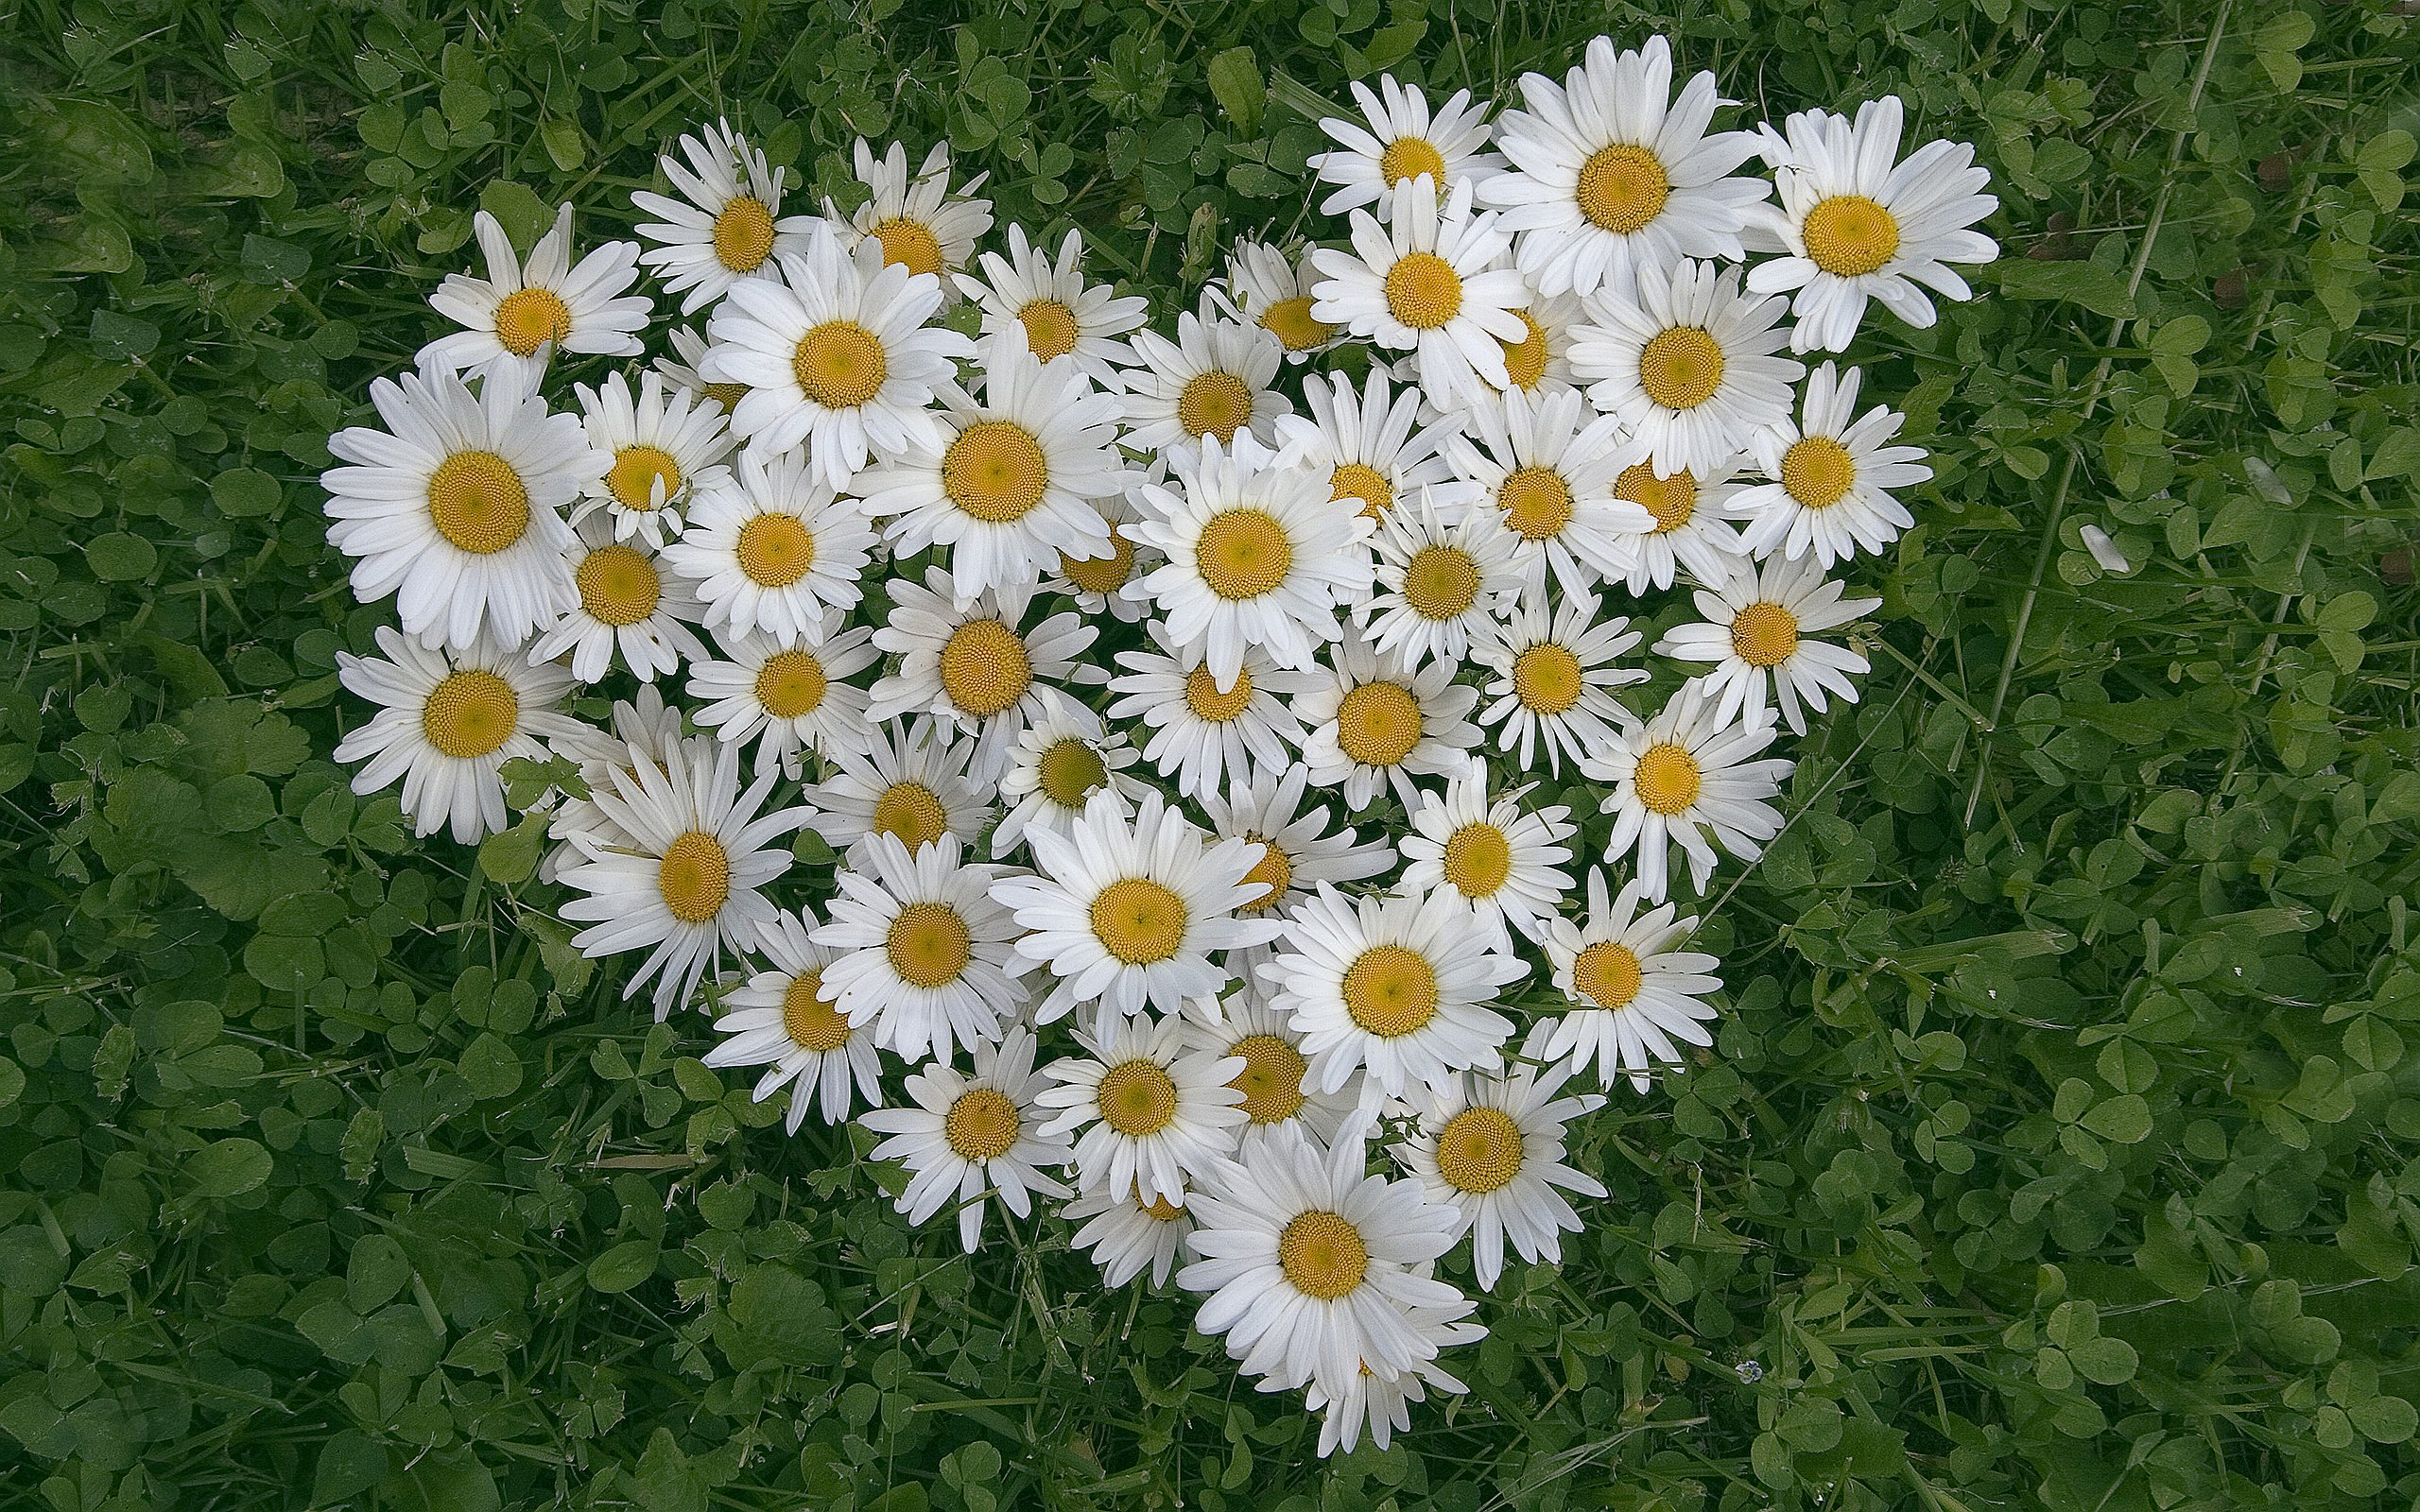 Until then, I will sit and figure my plan for some Daisies, because there isn't anyone I know that doesn't smile when they look at a bouquet of Daisies.